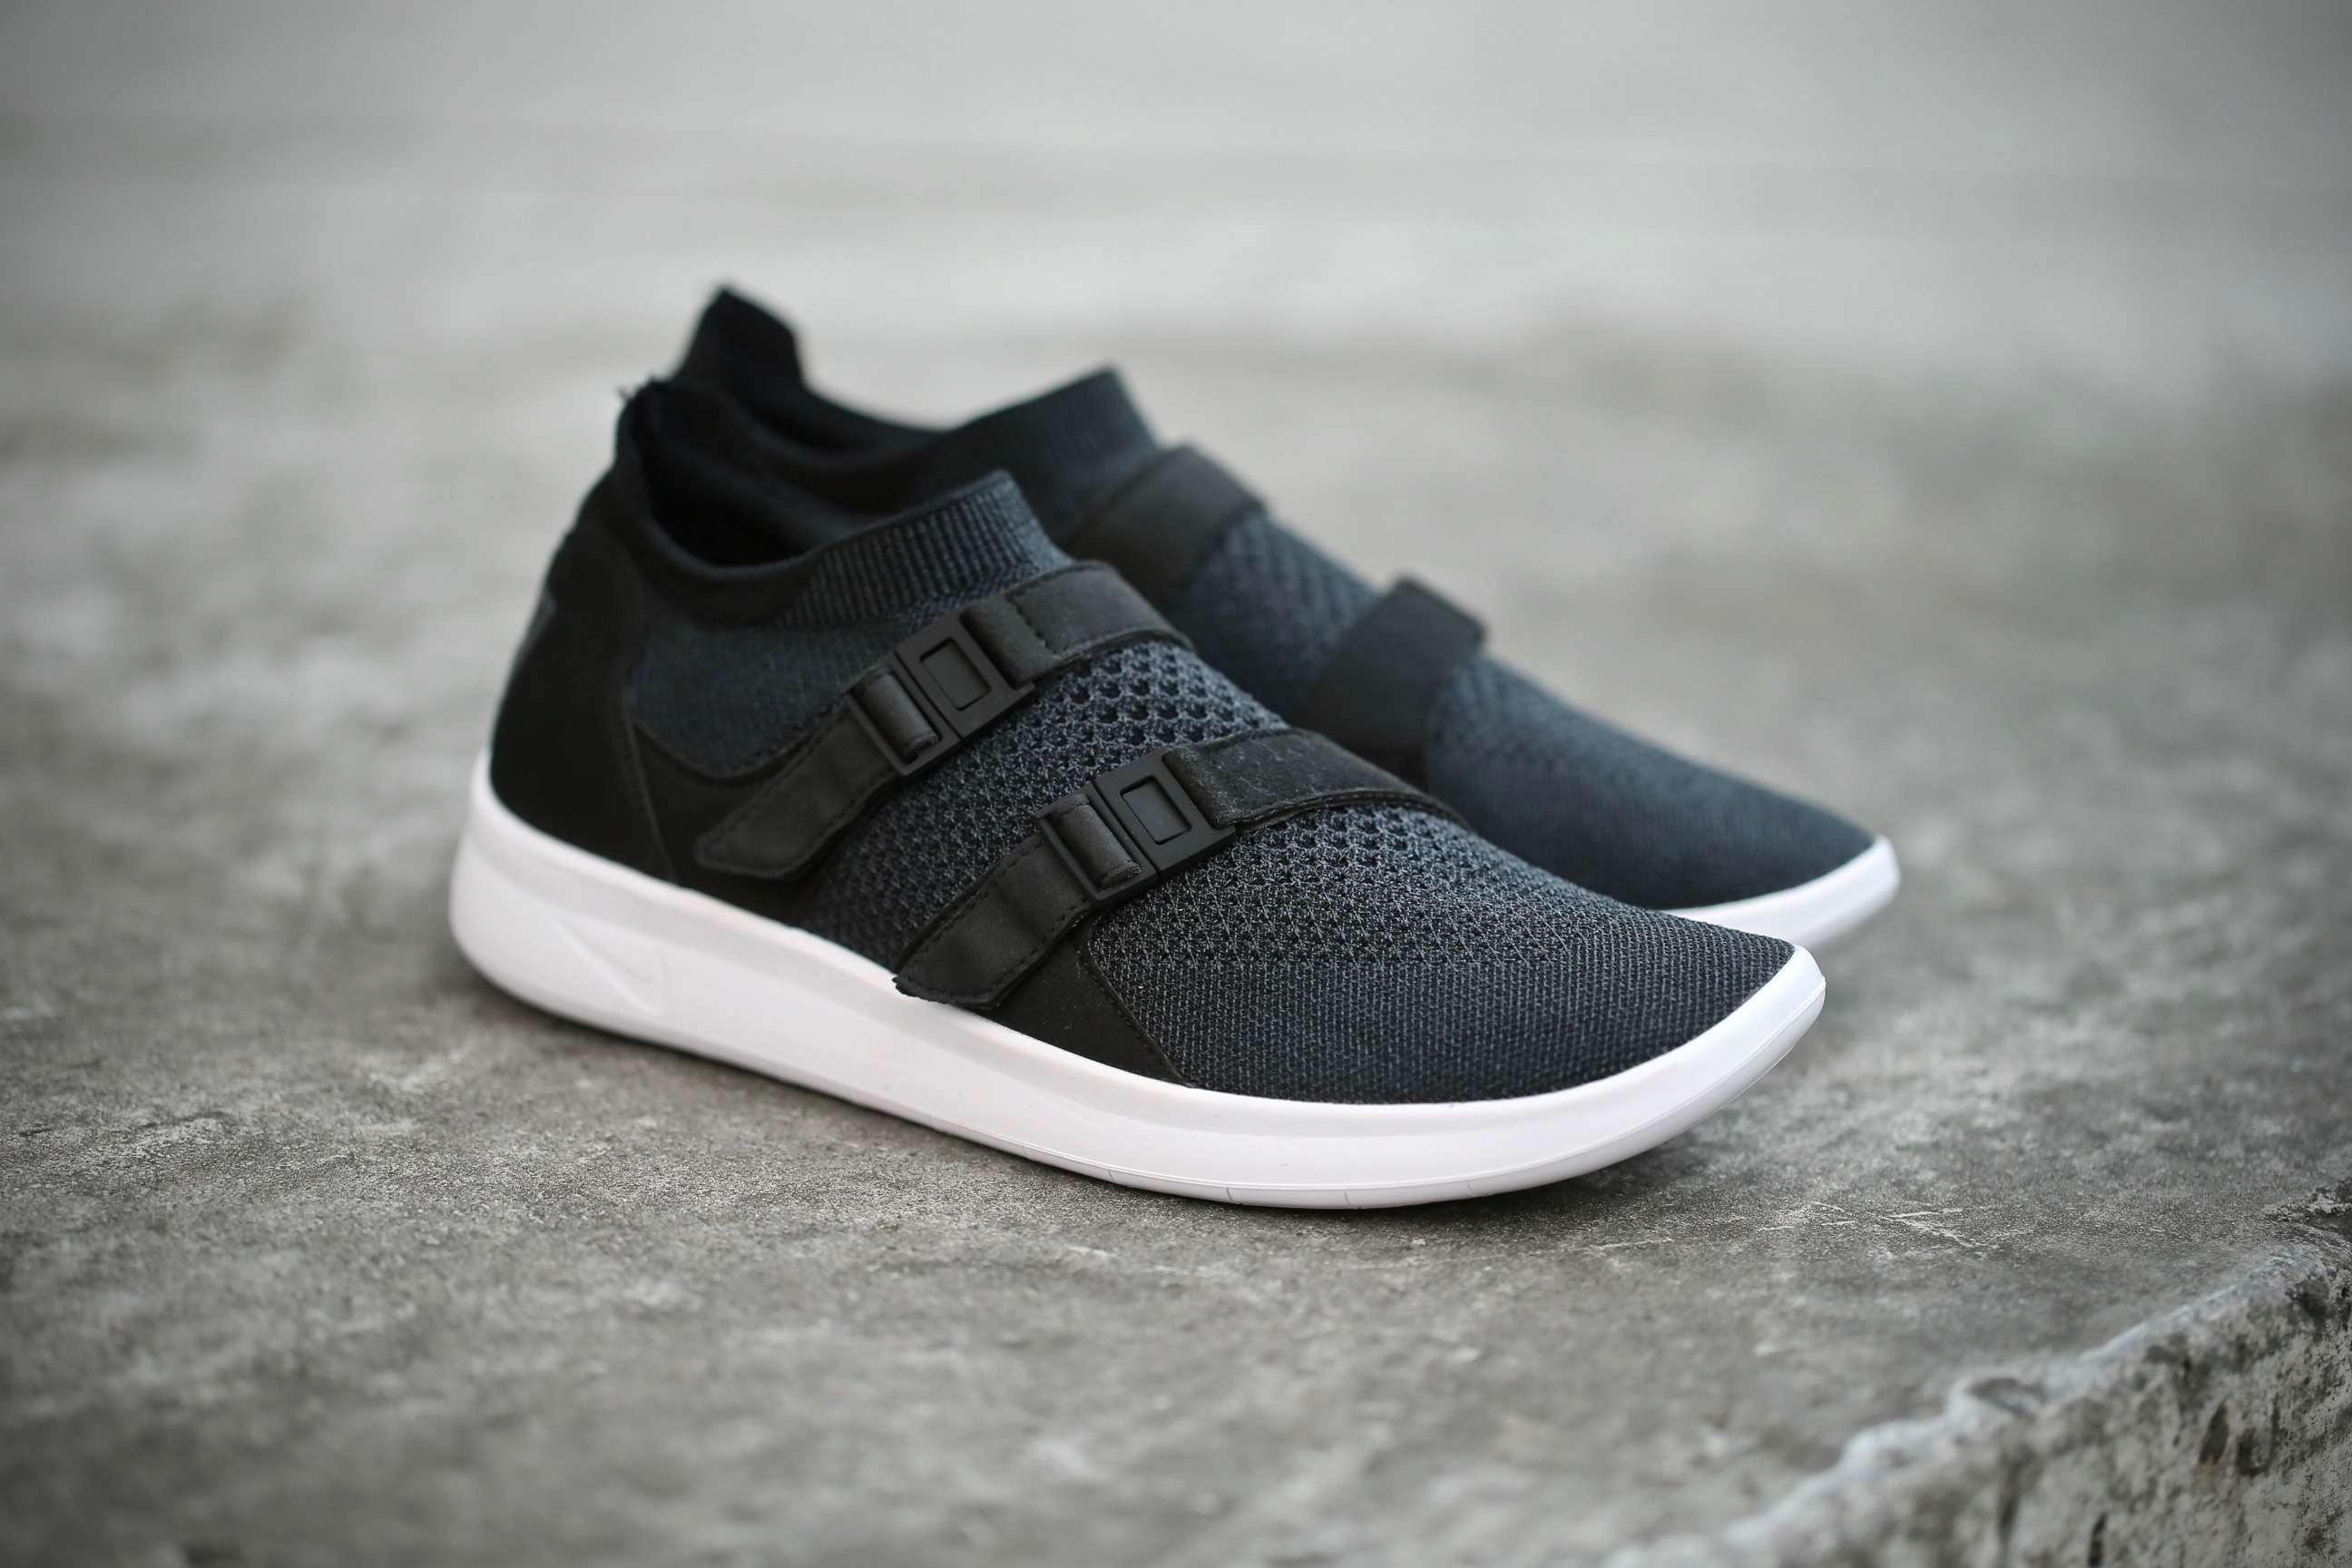 432eea837d9b Nike Air Sock Racer Ultra Flyknit – Black   Anthracite   Black ...